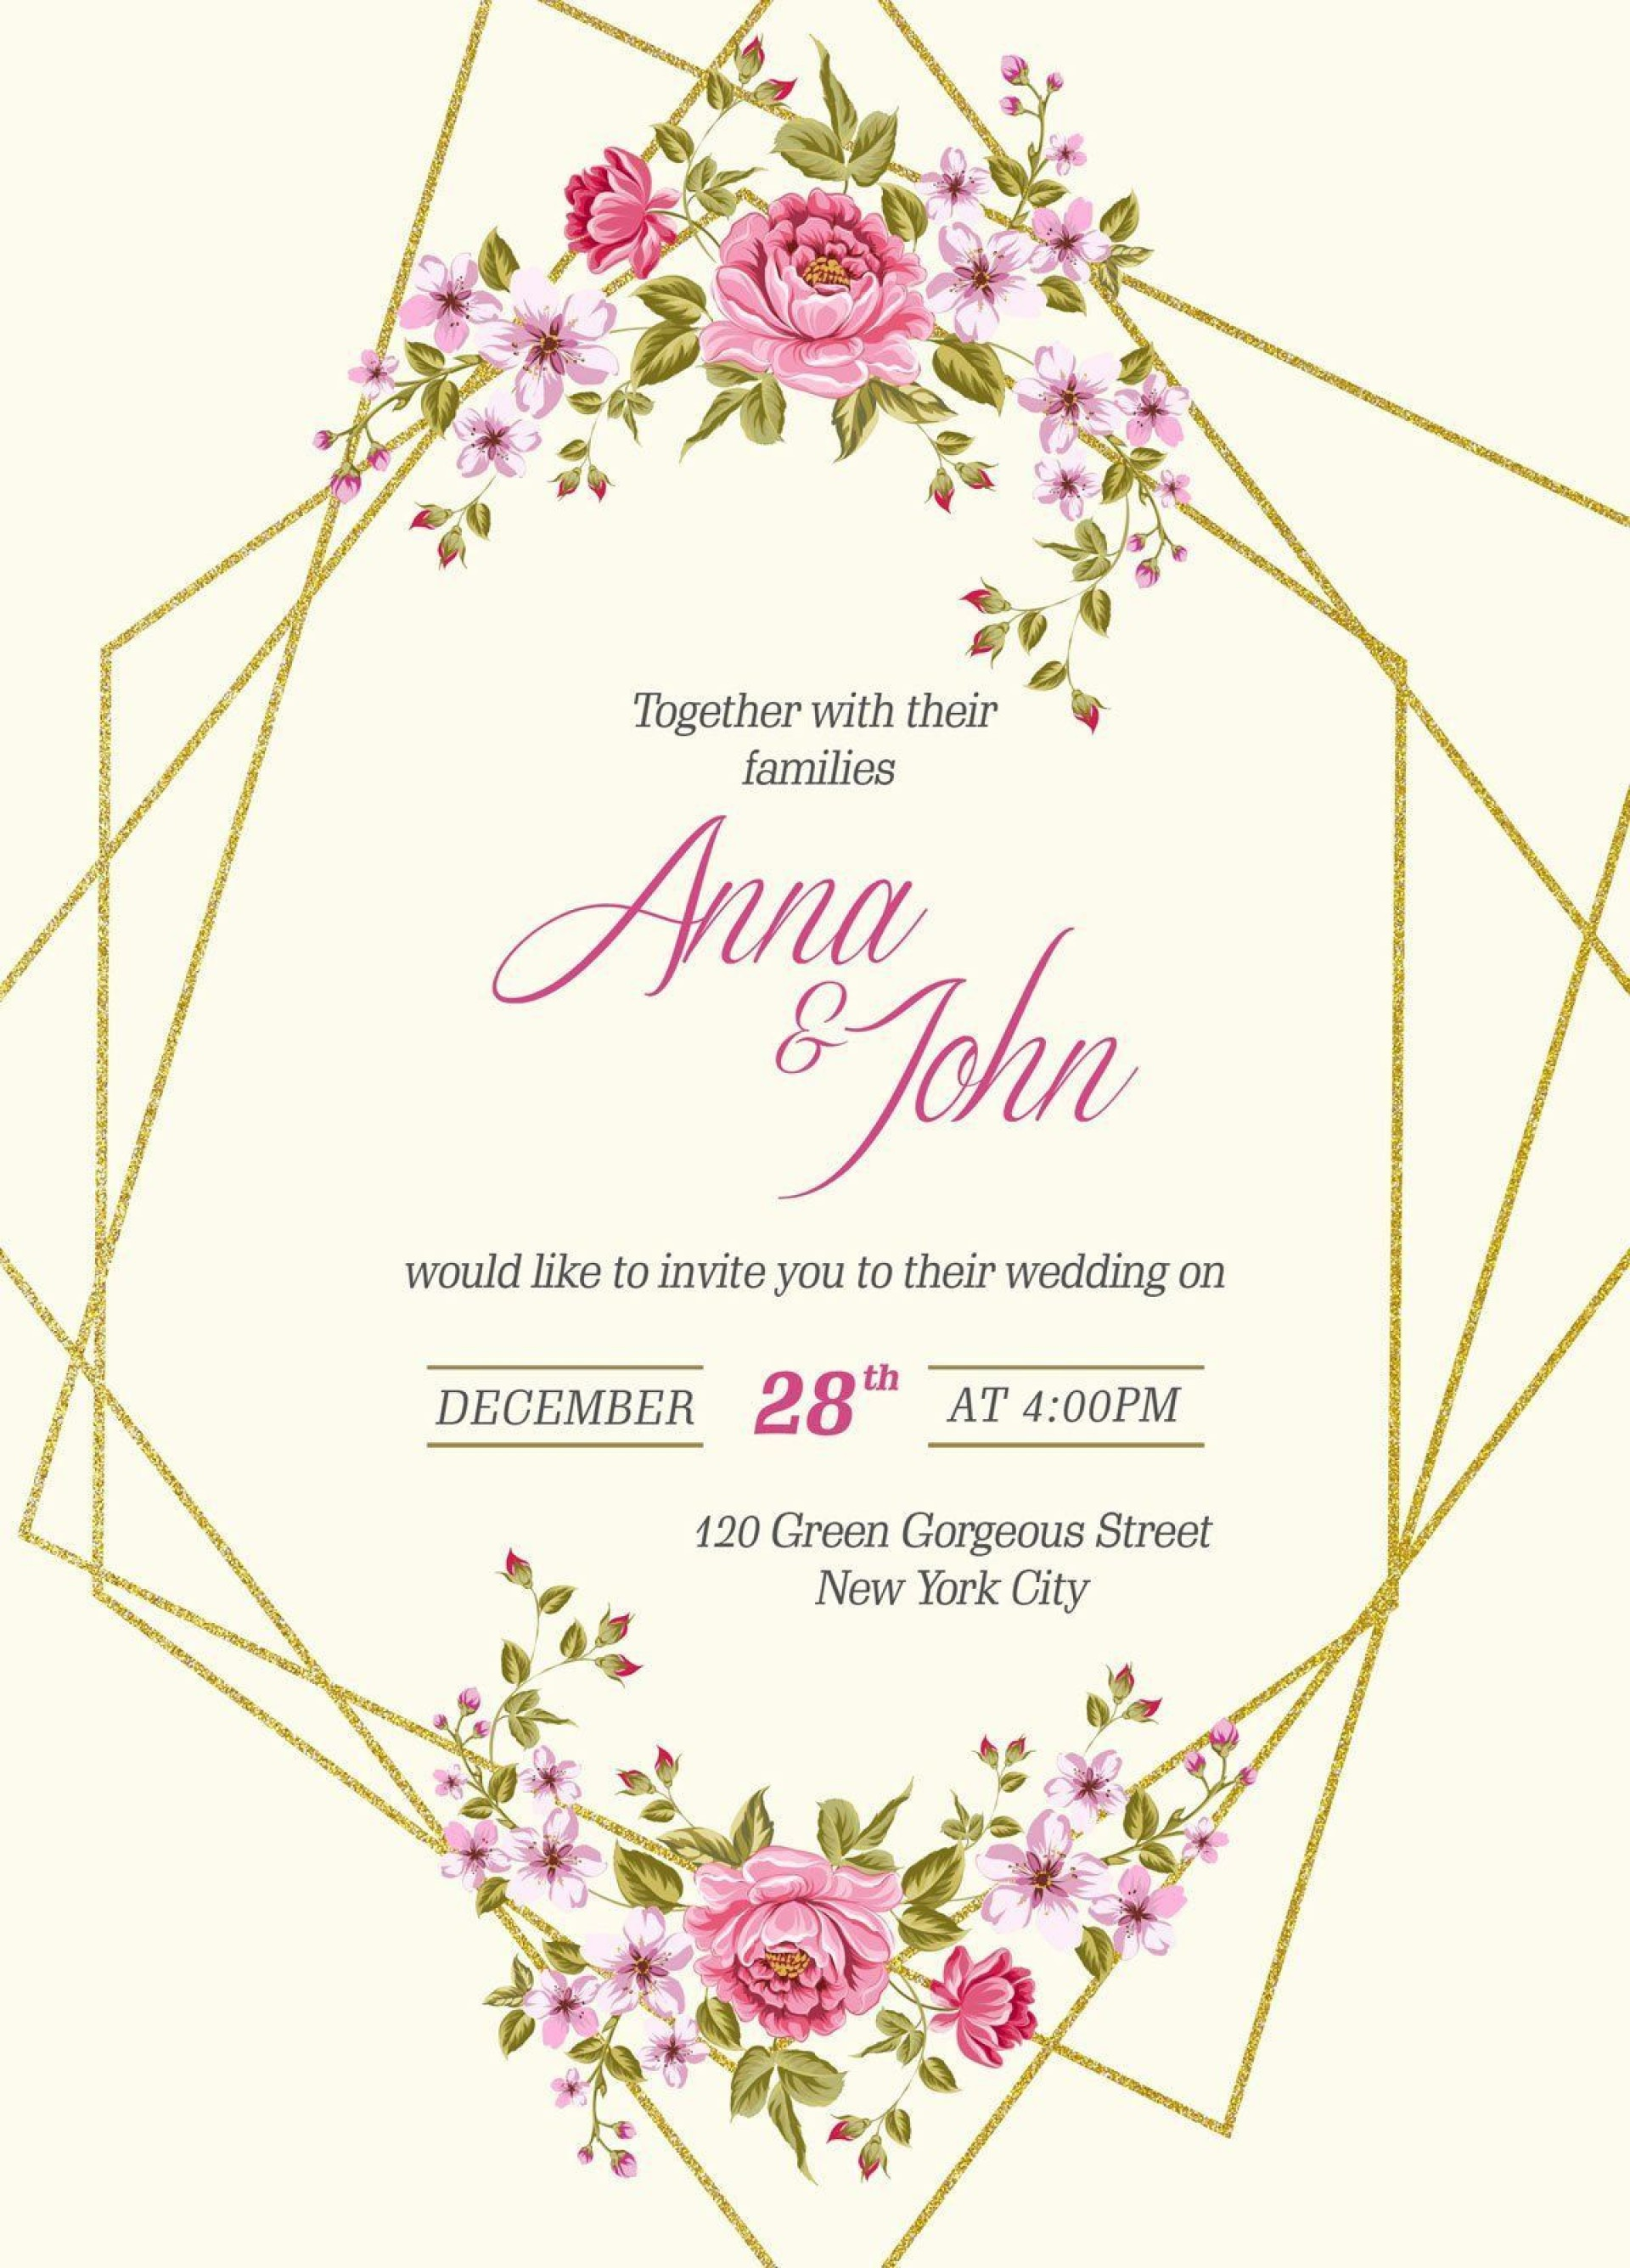 005 Wondrou Download Free Wedding Invitation Card Template Concept  Marriage Format Psd1920